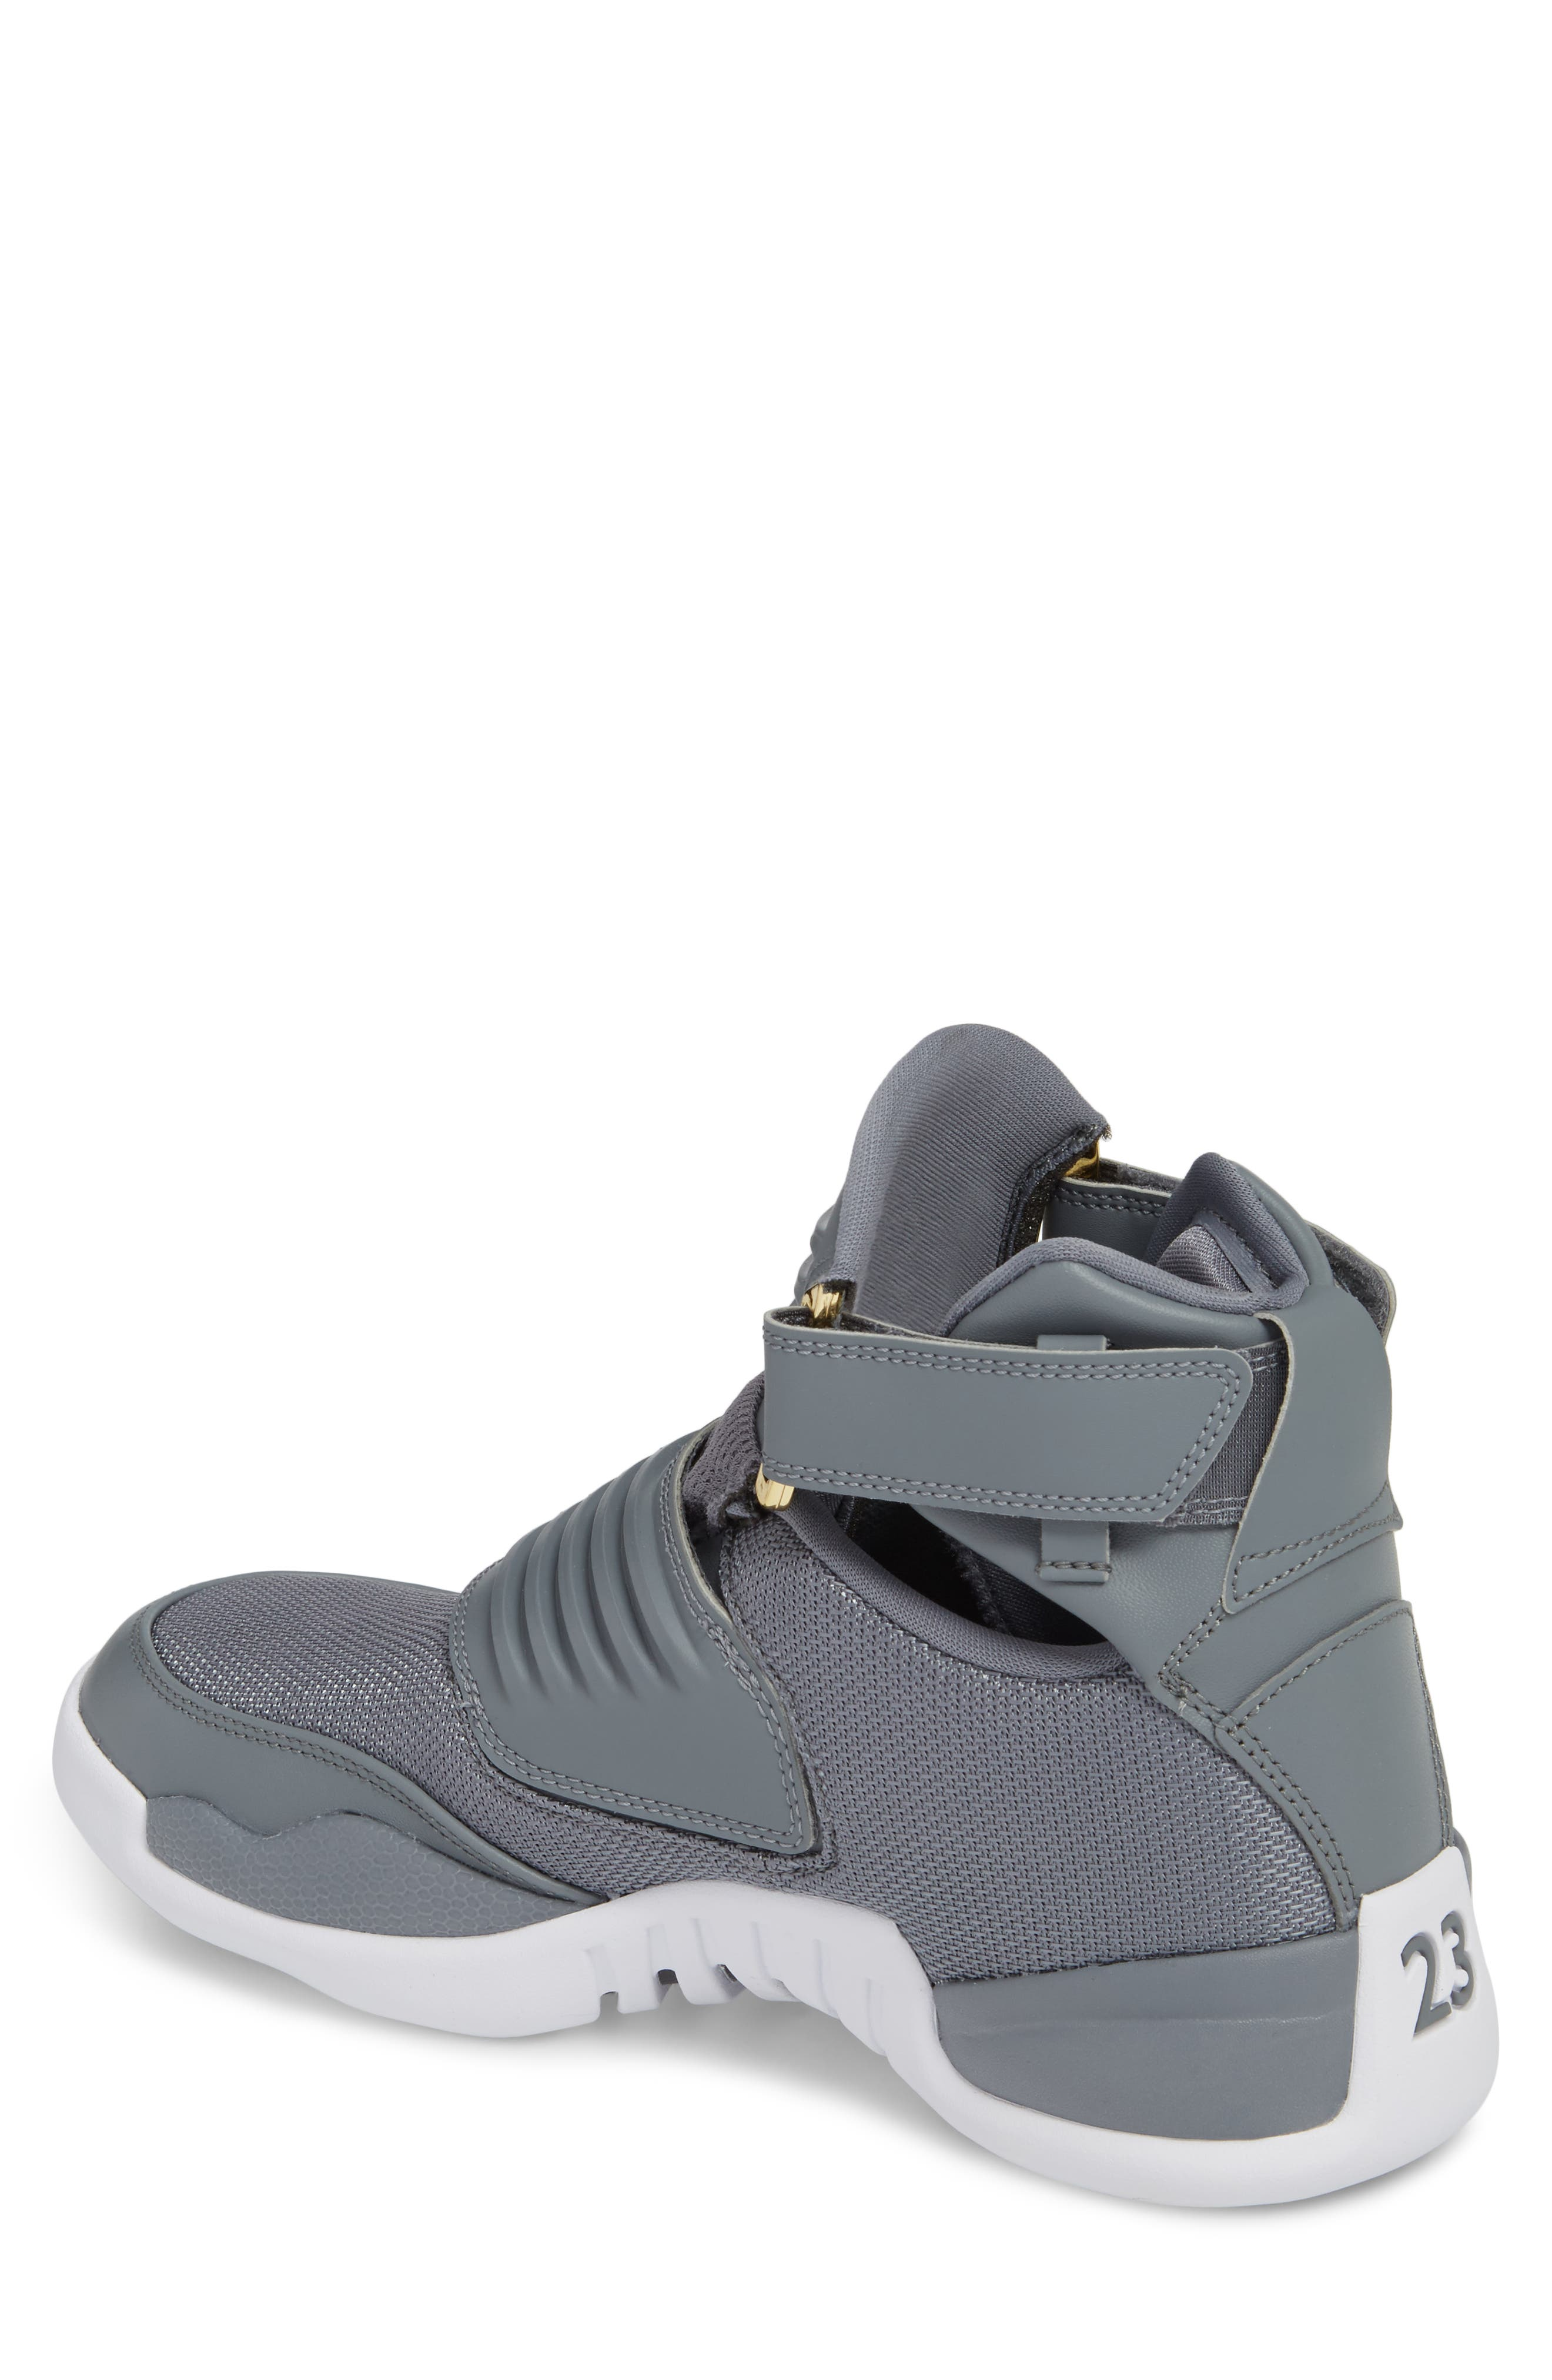 Alternate Image 2  - Nike Jordan Generation High Top Sneaker (Men)